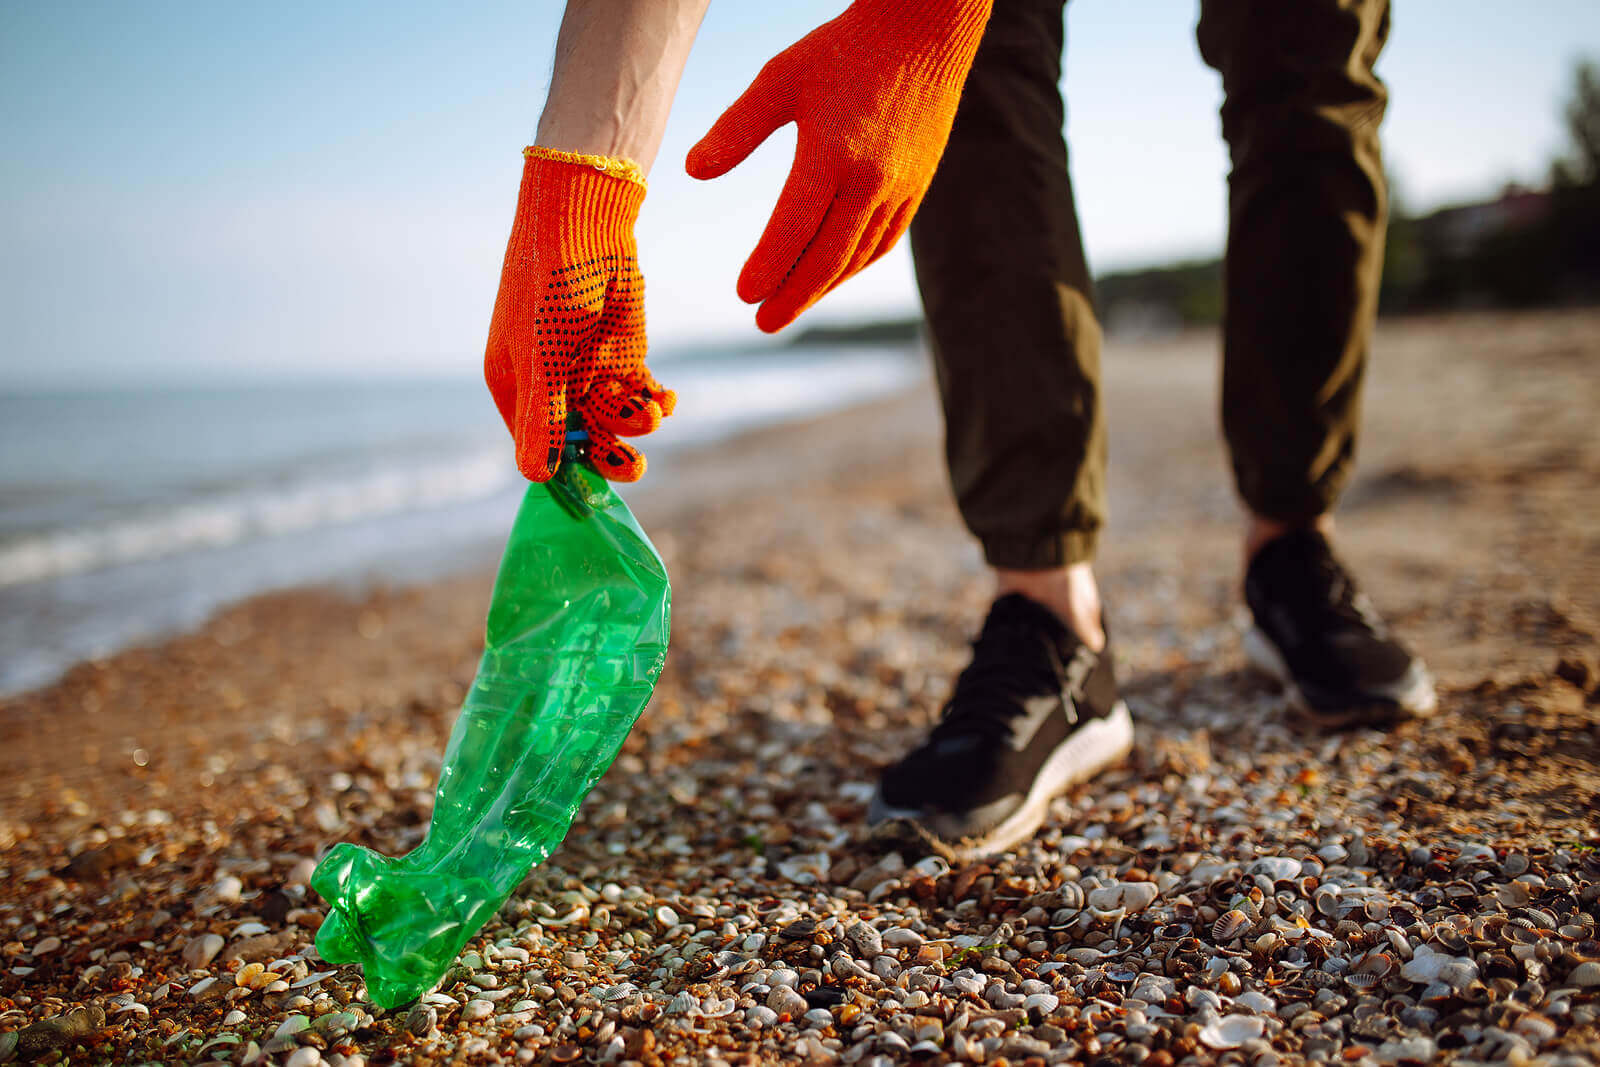 A person litter-picking on the beach, picking up a green plastic bottle with orange gloves